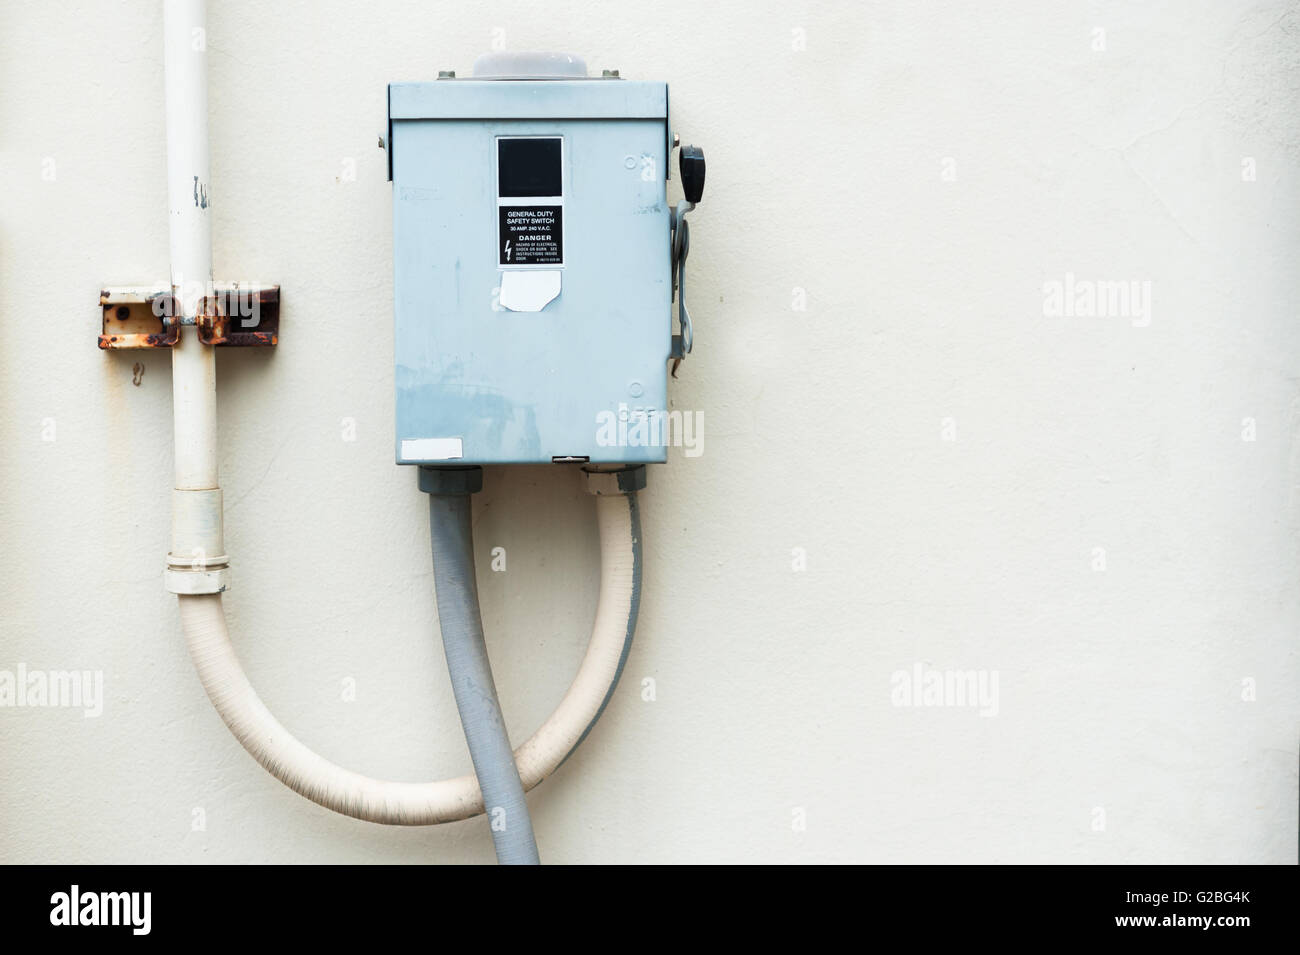 electric outdoor fuse box in stock photos electric outdoor fuse rh alamy com outdoor fuse box uk outdoor fuse box uk